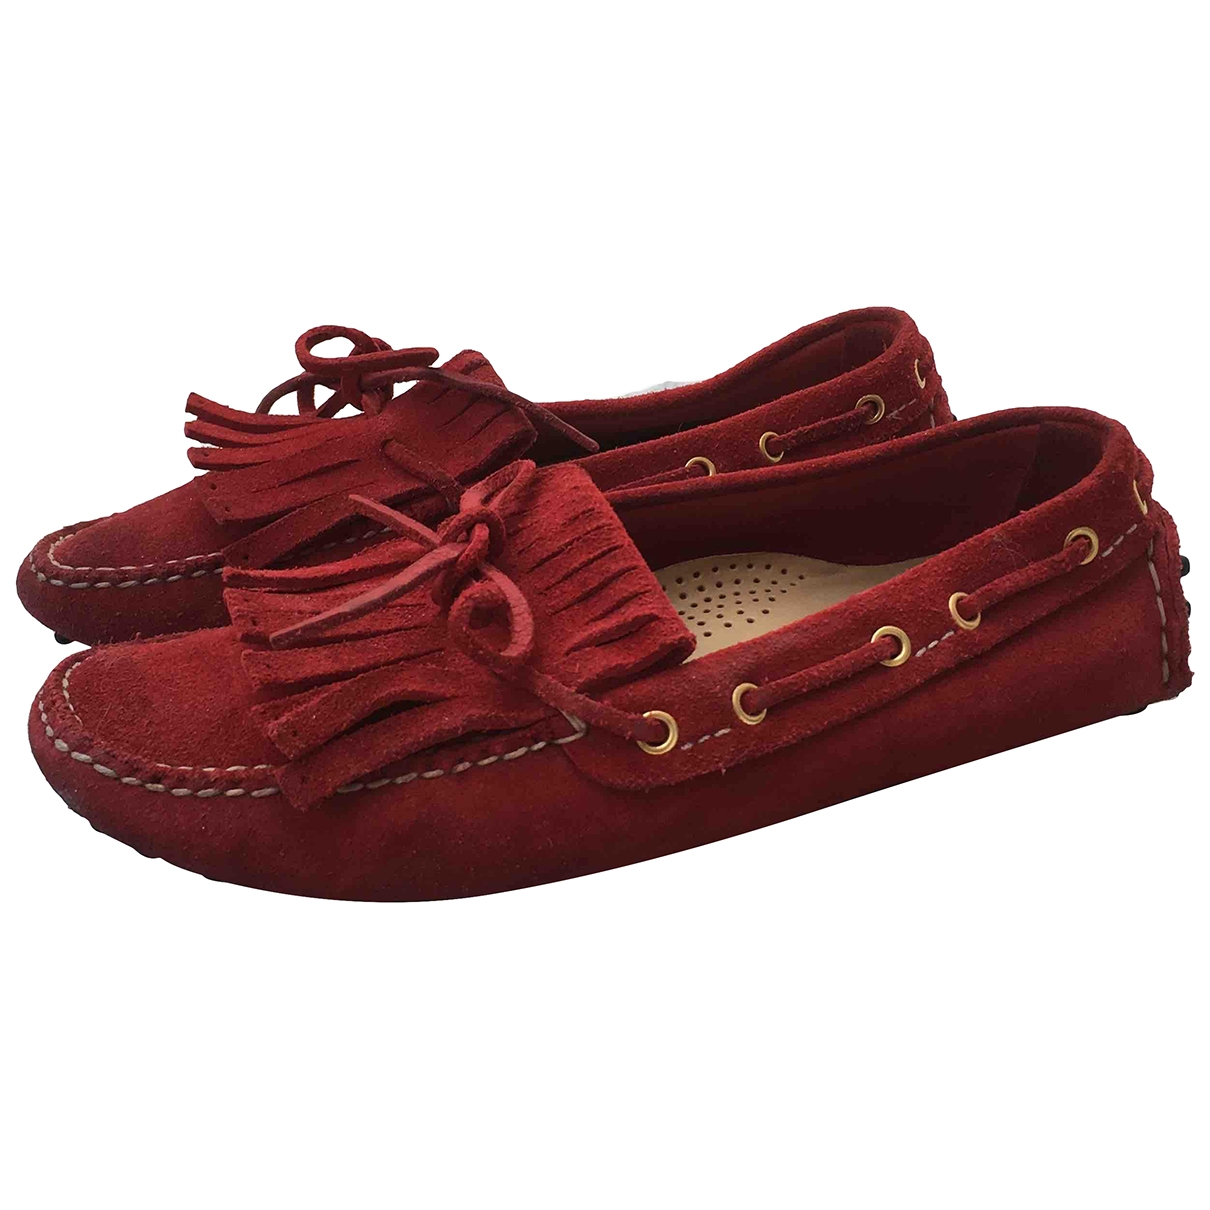 Carshoe \N Red Suede Flats for Women 37 EU